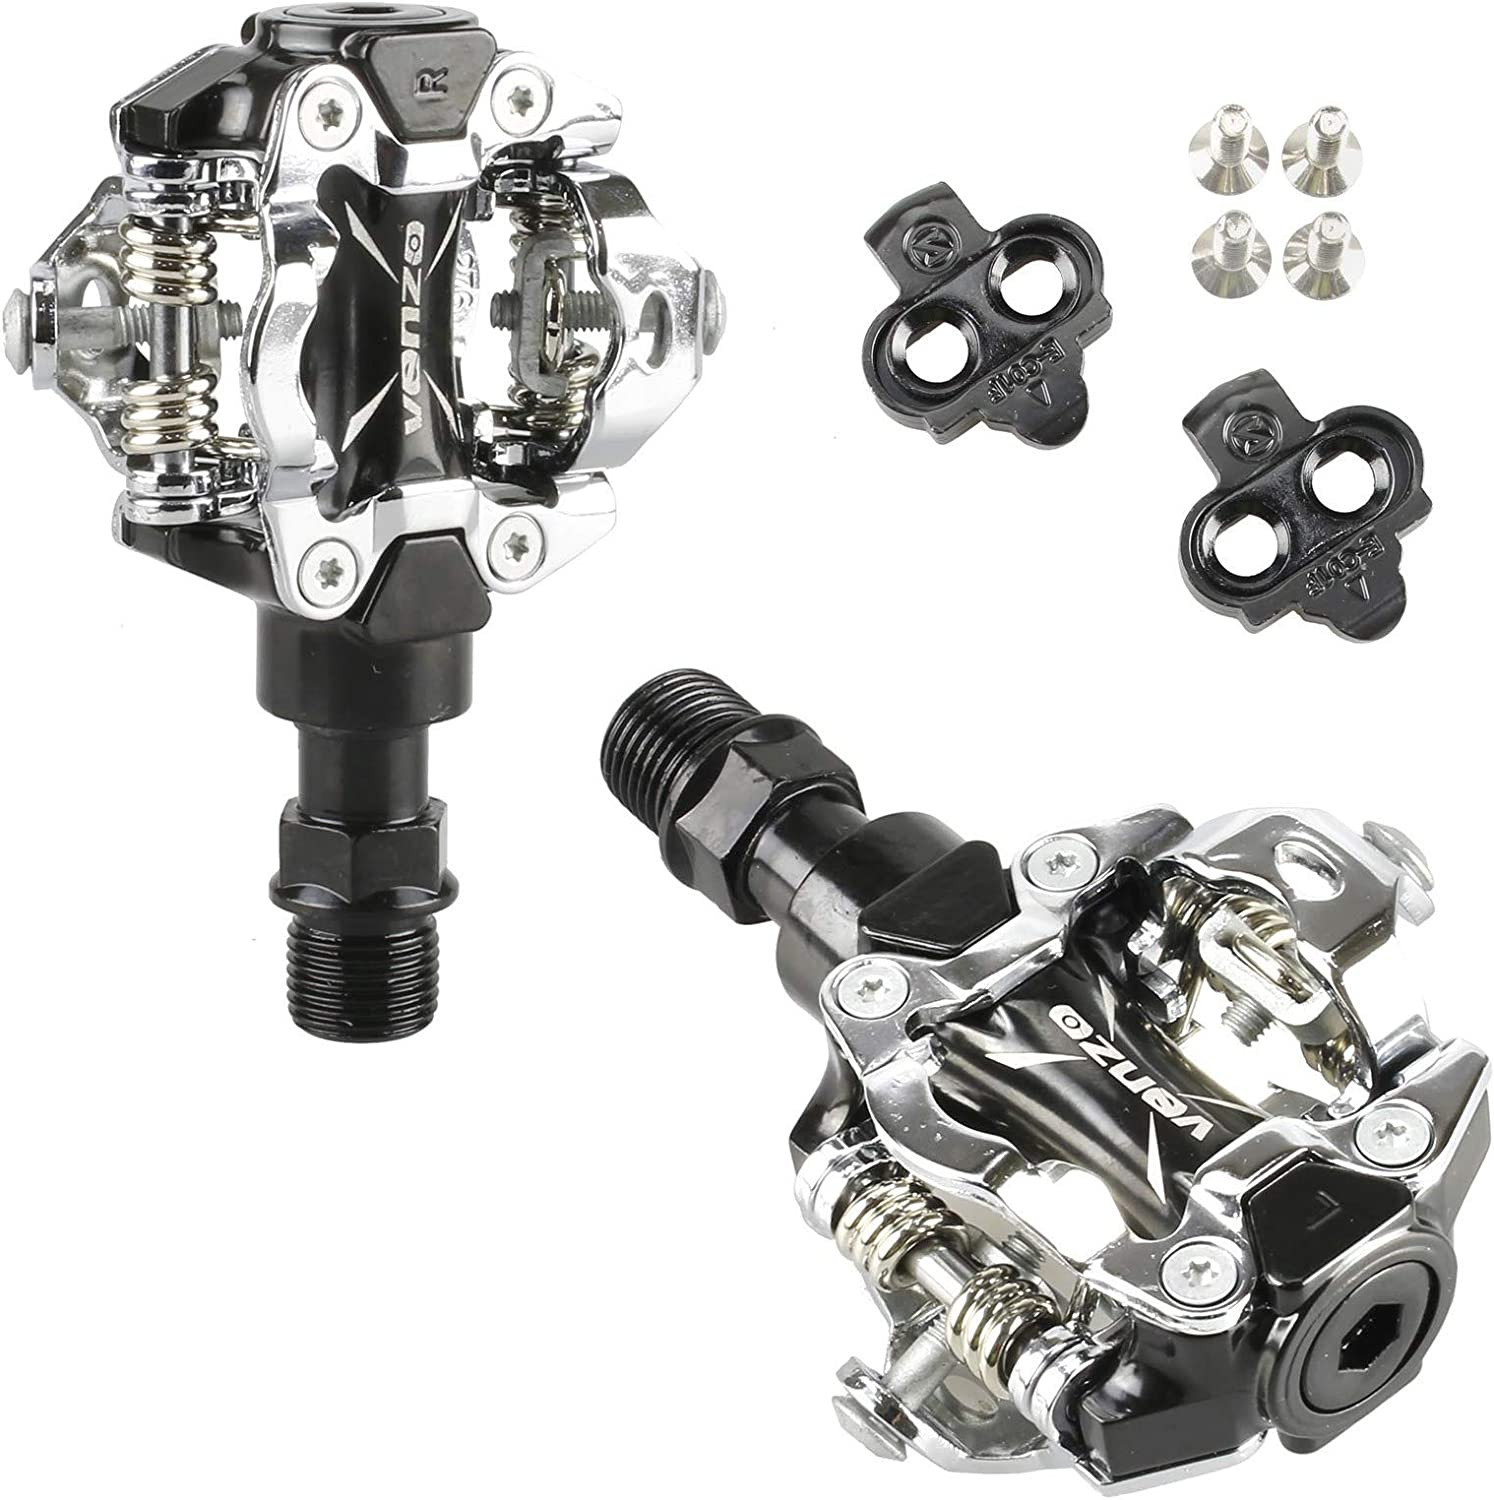 Pedals /& Cleats 43 Venzo Mountain Bike Bicycle Cycling Compatible with Shimano SPD Shoes